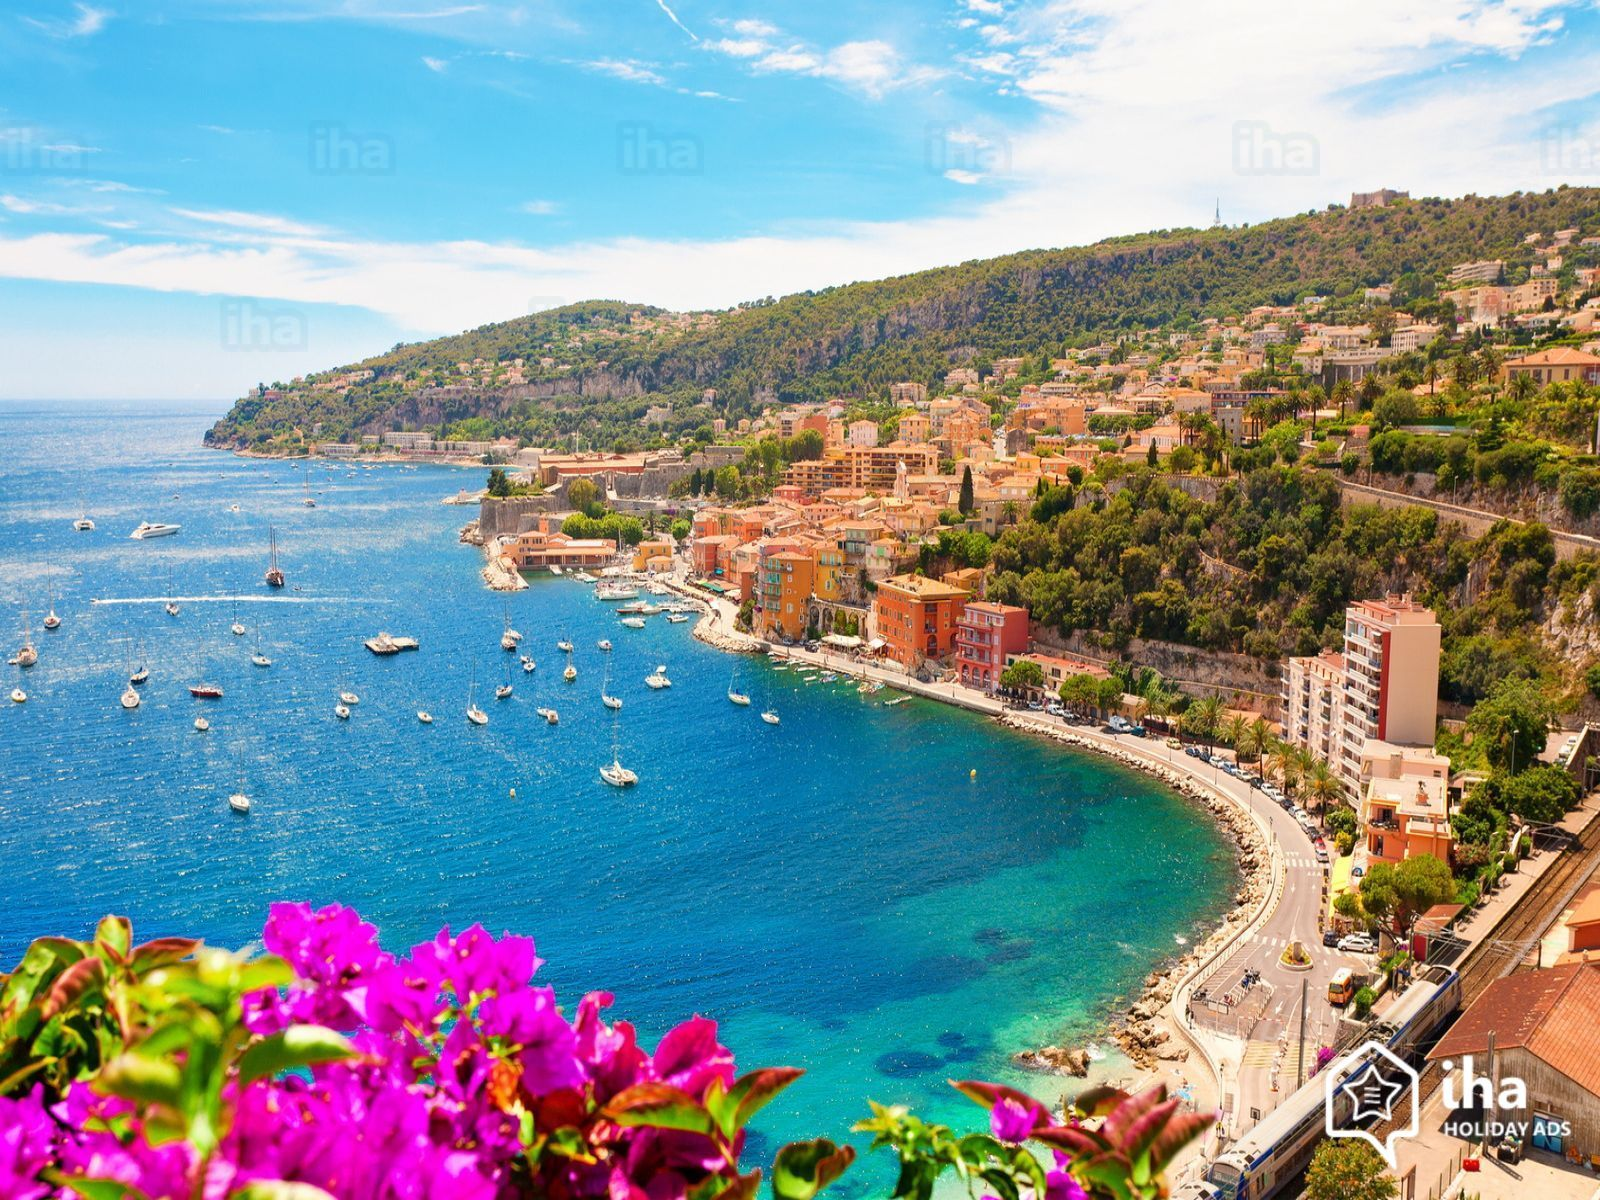 French Riviera Cote D Azur Gite Self Catering Rentals Iha Com French Riviera Road Trip France Amazing Travel Destinations